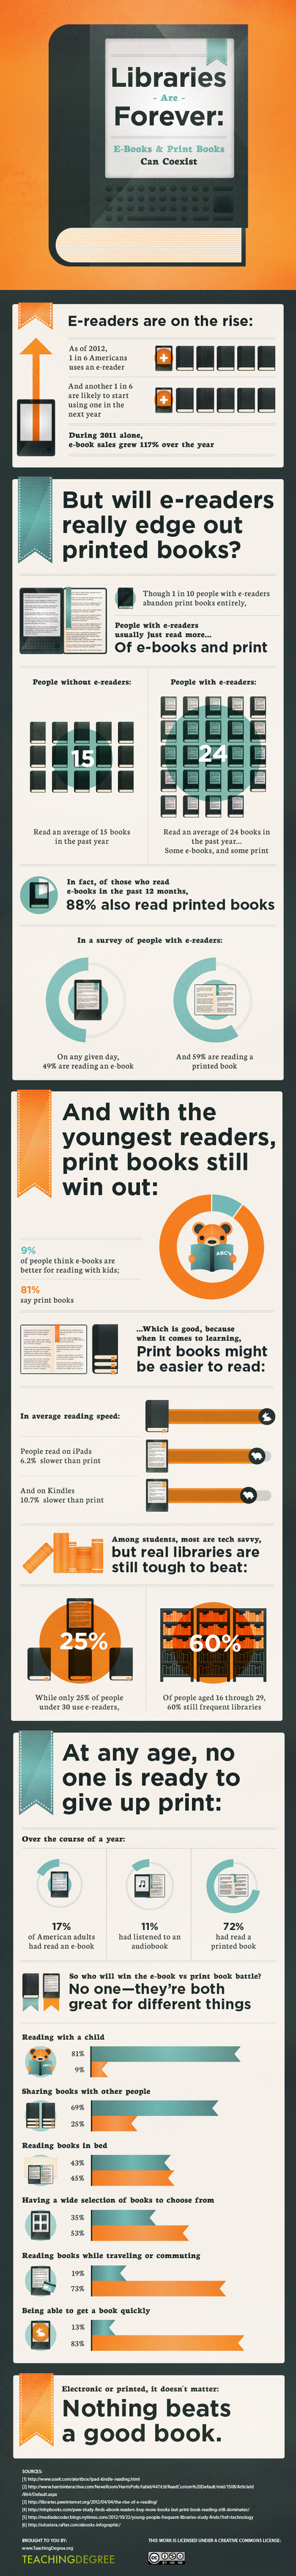 How Can eBooks and Print Books Coexist Infographic | Litteris | Scoop.it